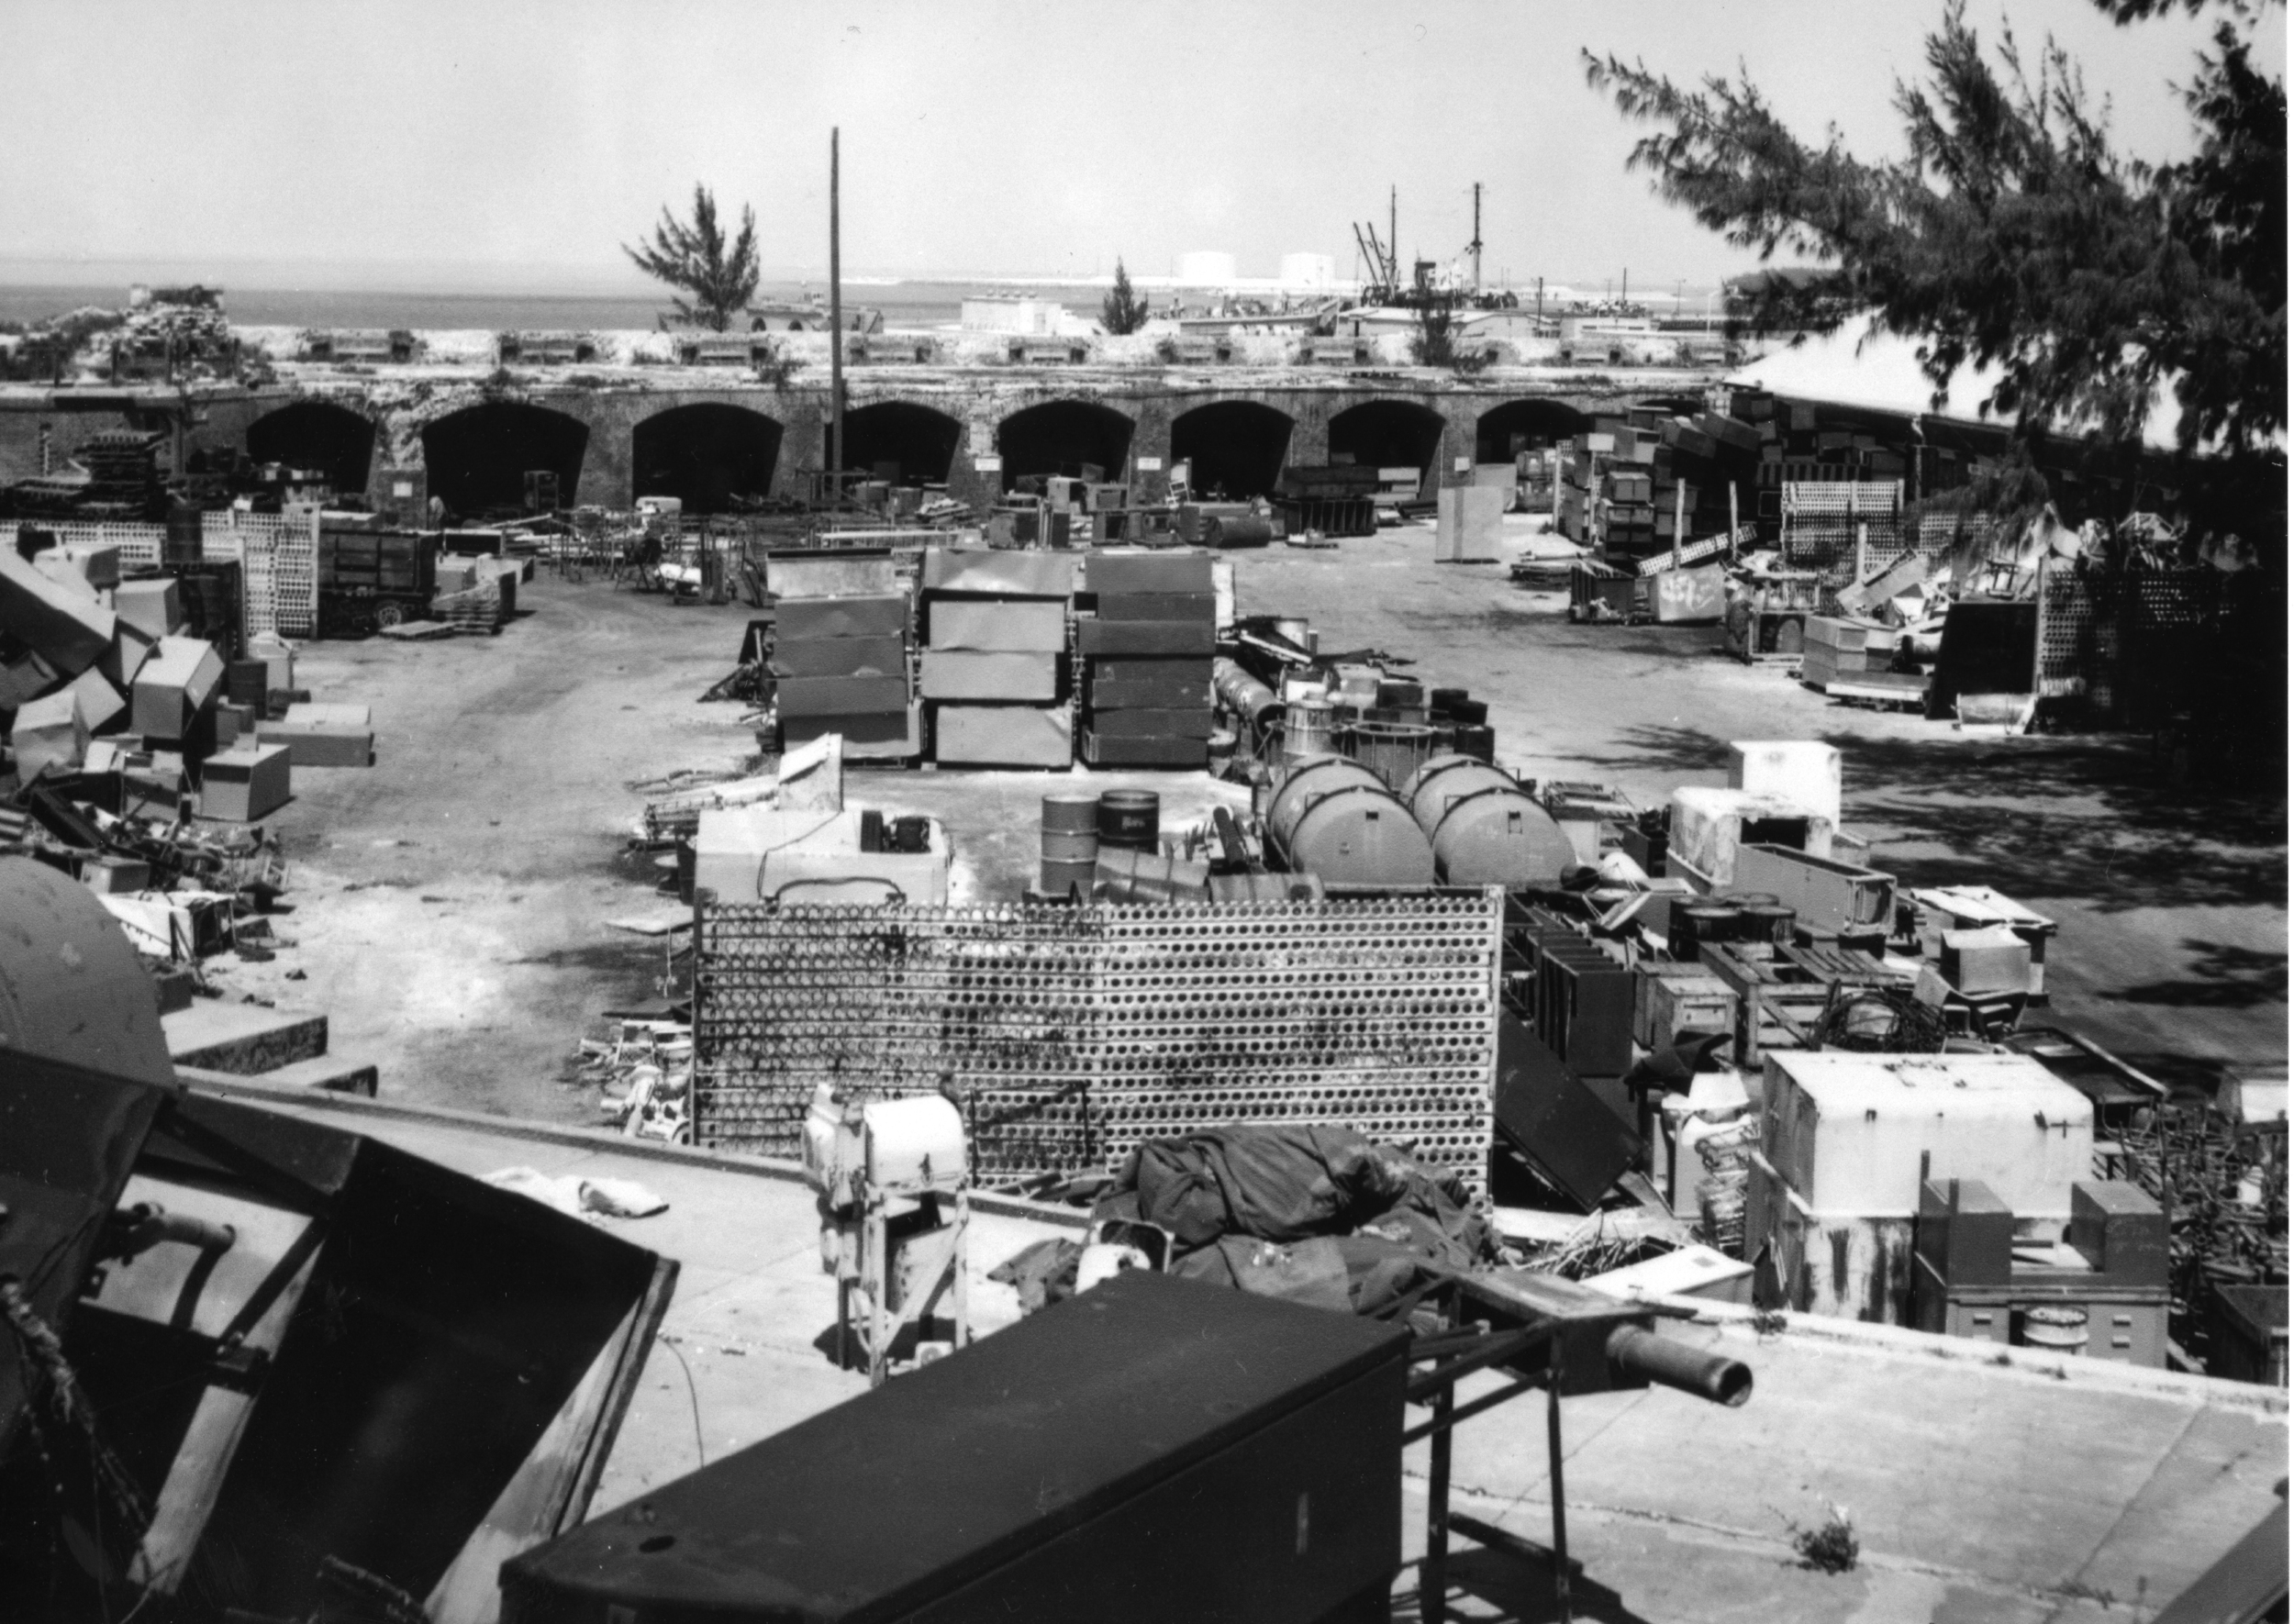 1954 - 1975 Fort utilized as a Storage and Salvage Yard for the Navy